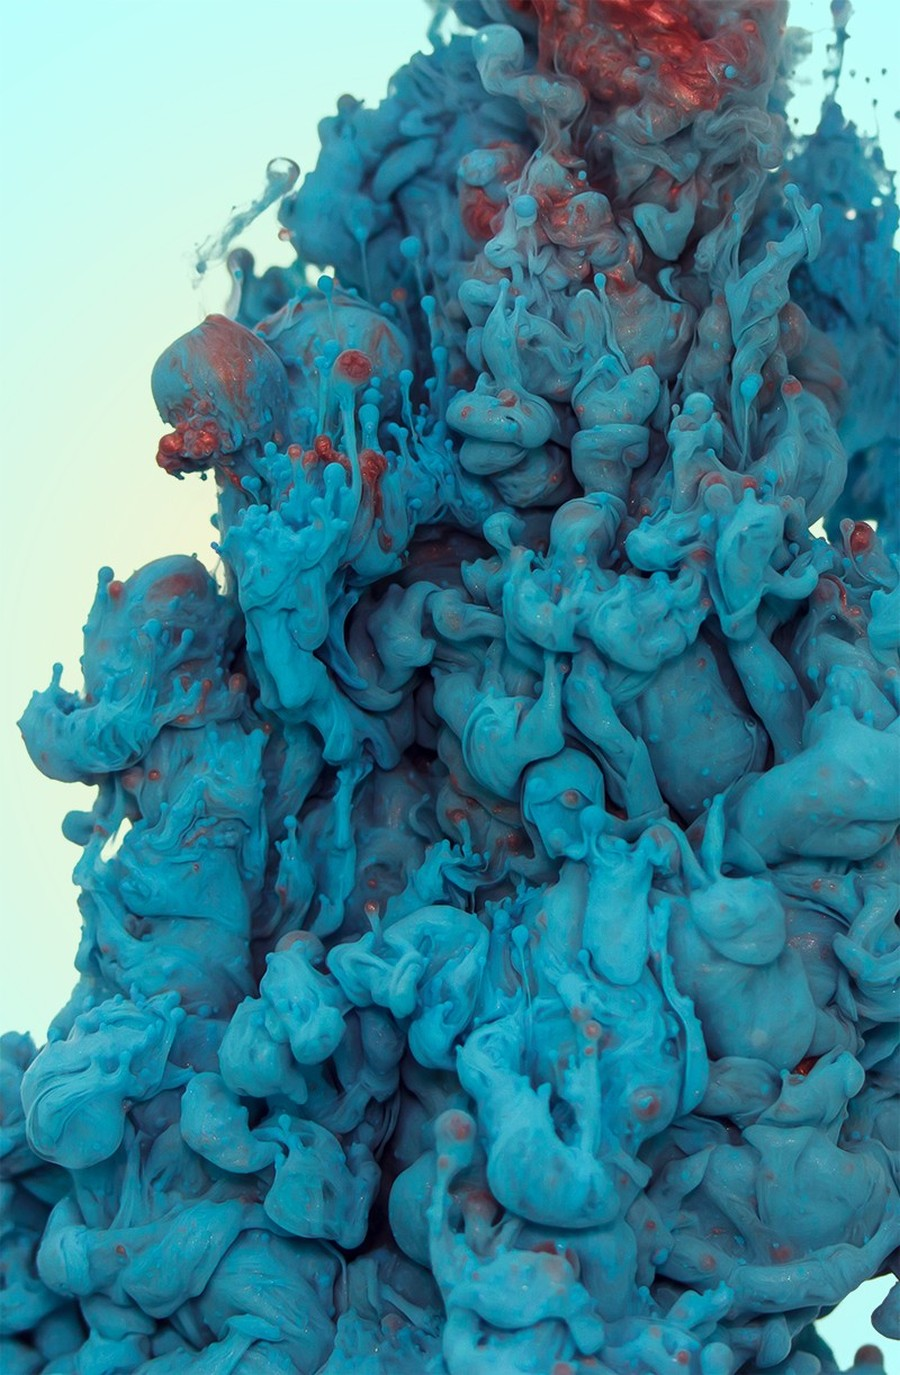 Alberto Seveso_Heavy-Metals-Ink-Underwater-Photography-78465